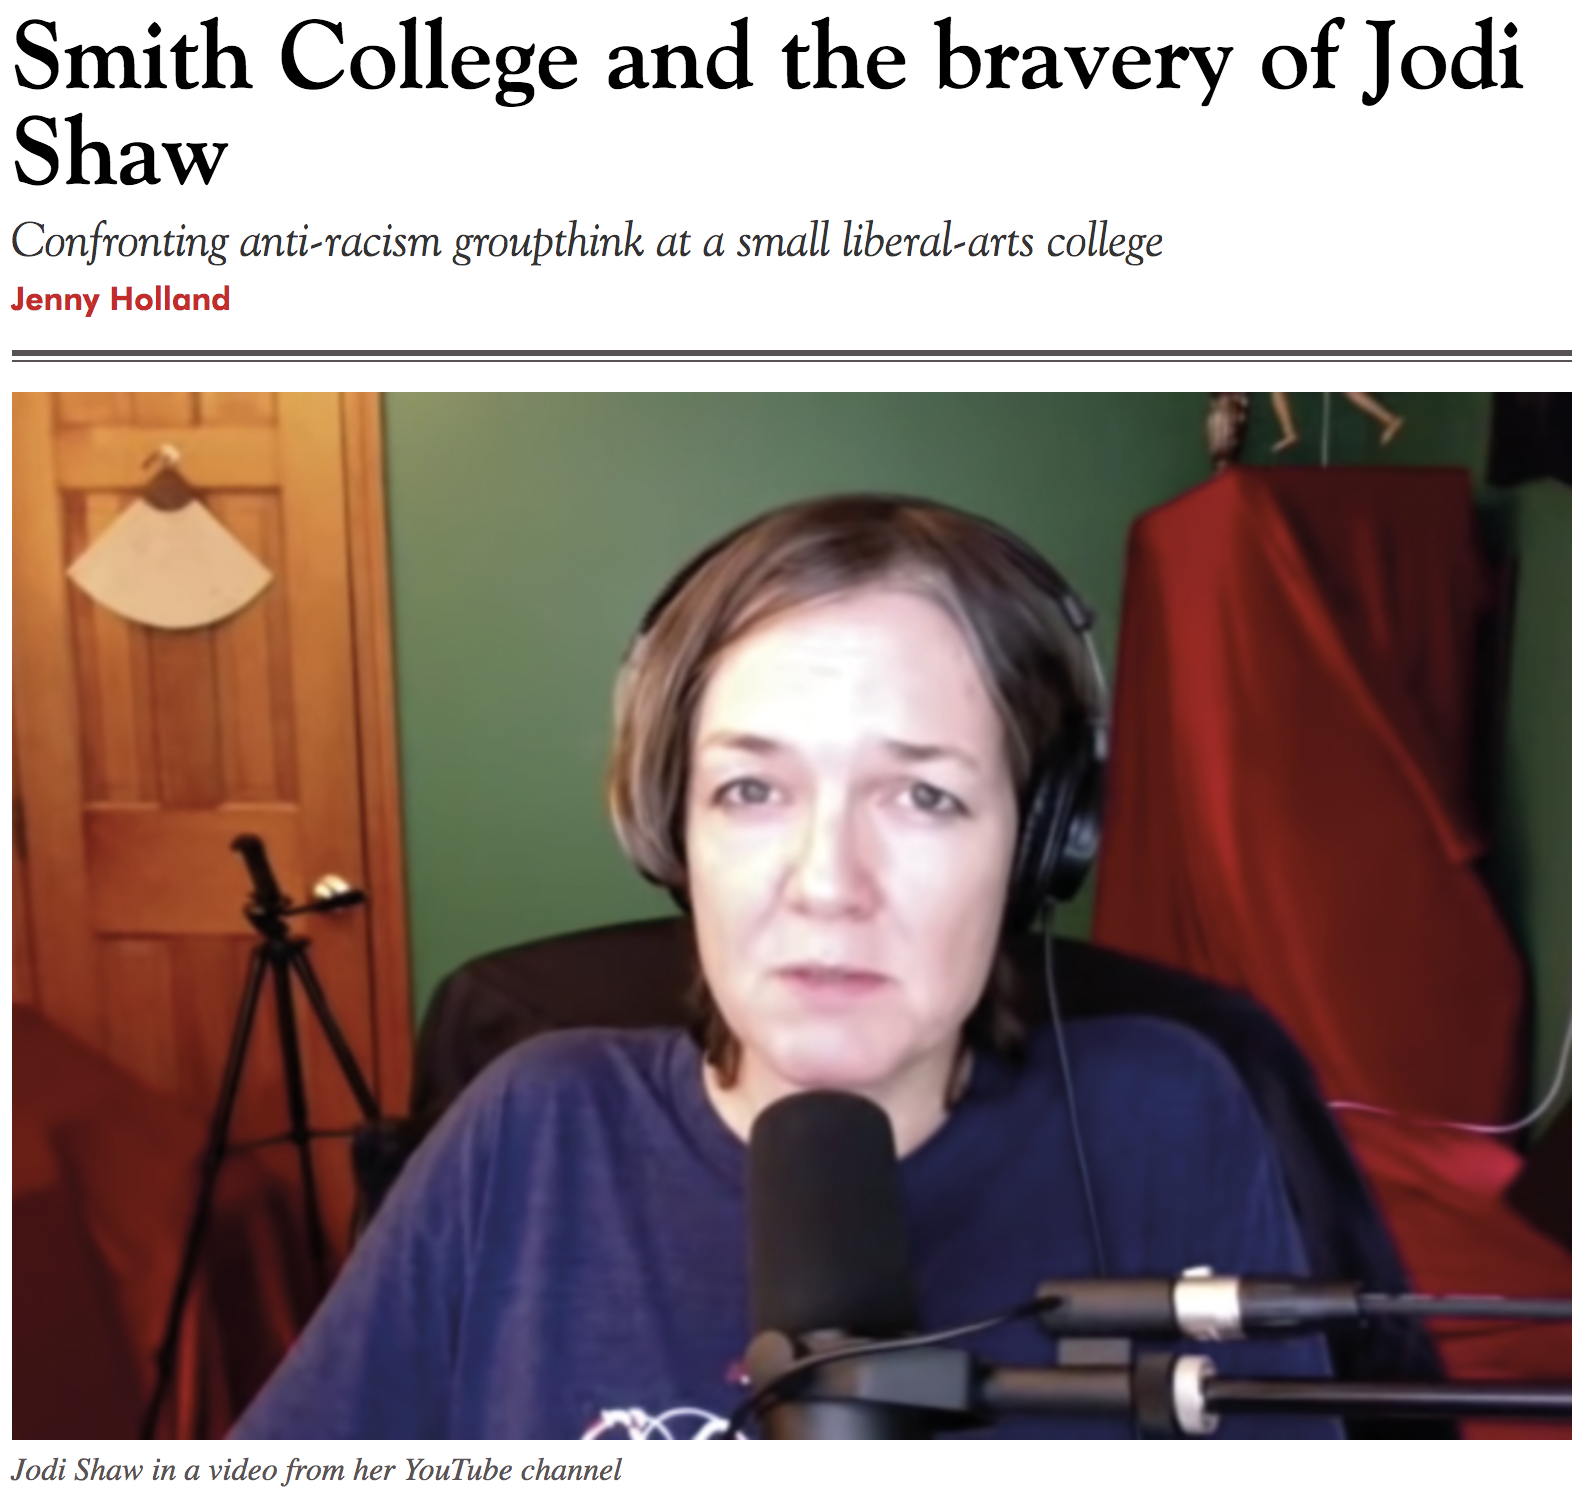 Jodi Shaw, the gadfly of Smith College: Put on paid leave, nevertheless, she persists